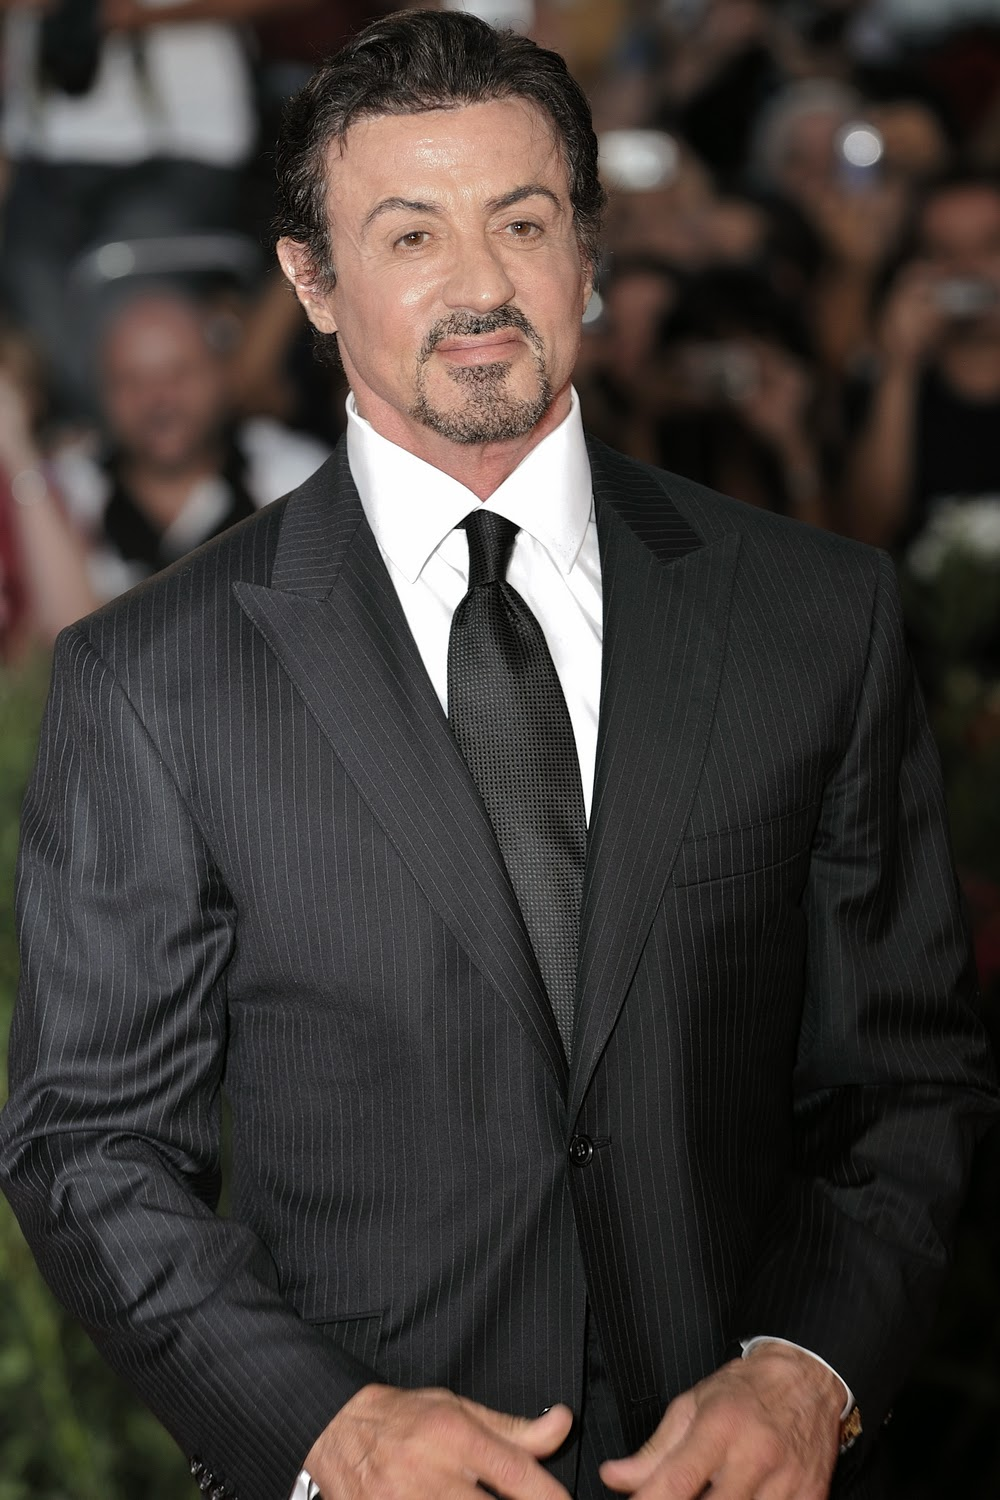 Sylvester Stallone is an American Actor, Screenwriter, Film Director